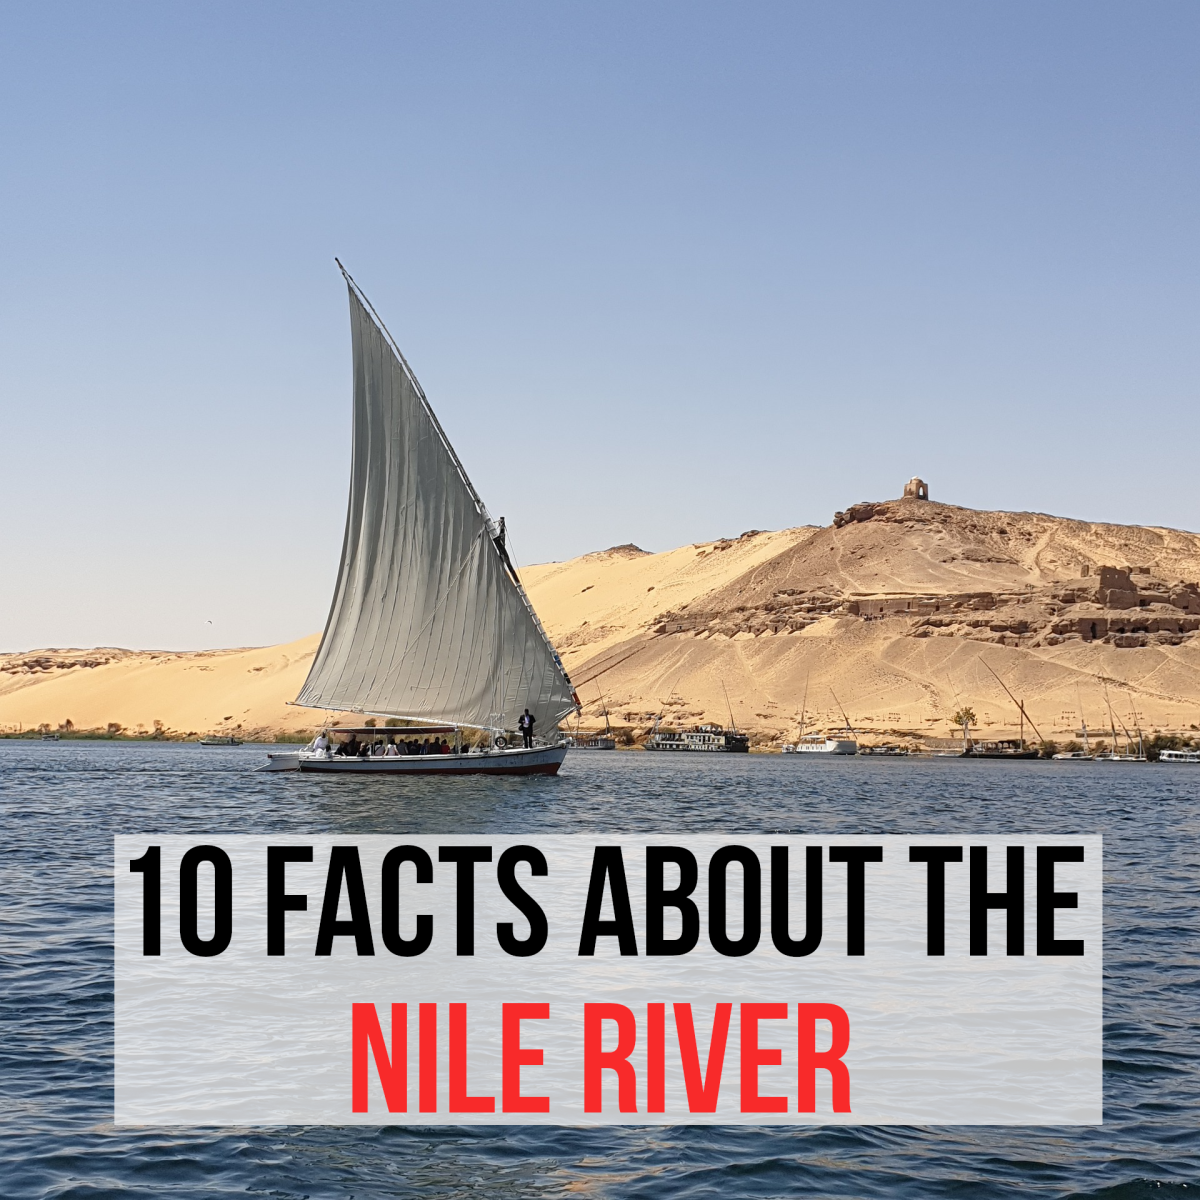 Read on for my 10 facts about the Nile River...